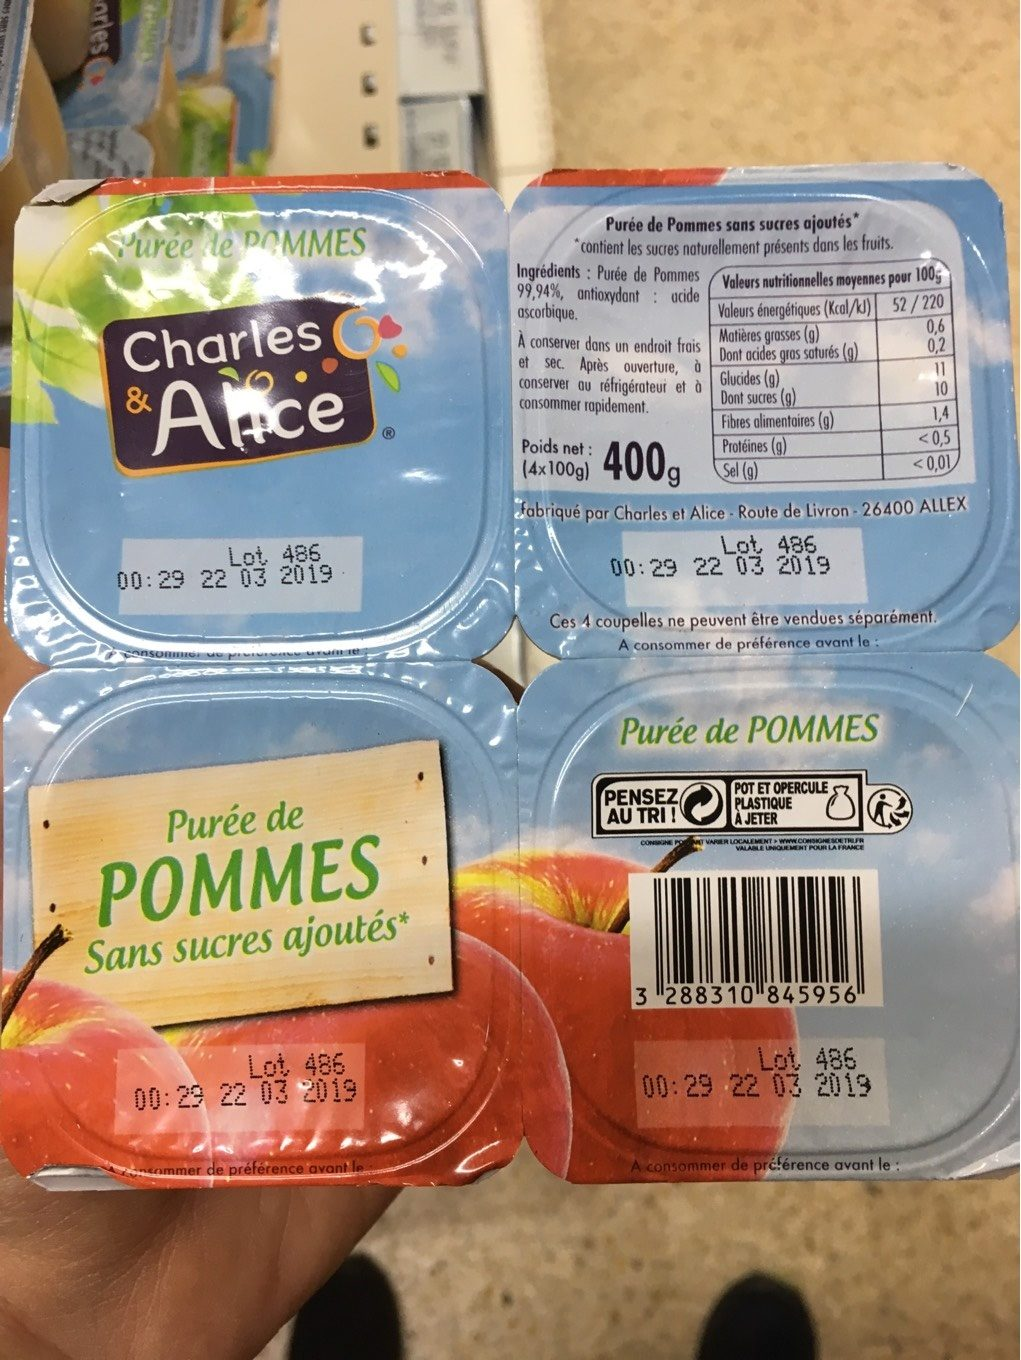 Puree de pommes - Product